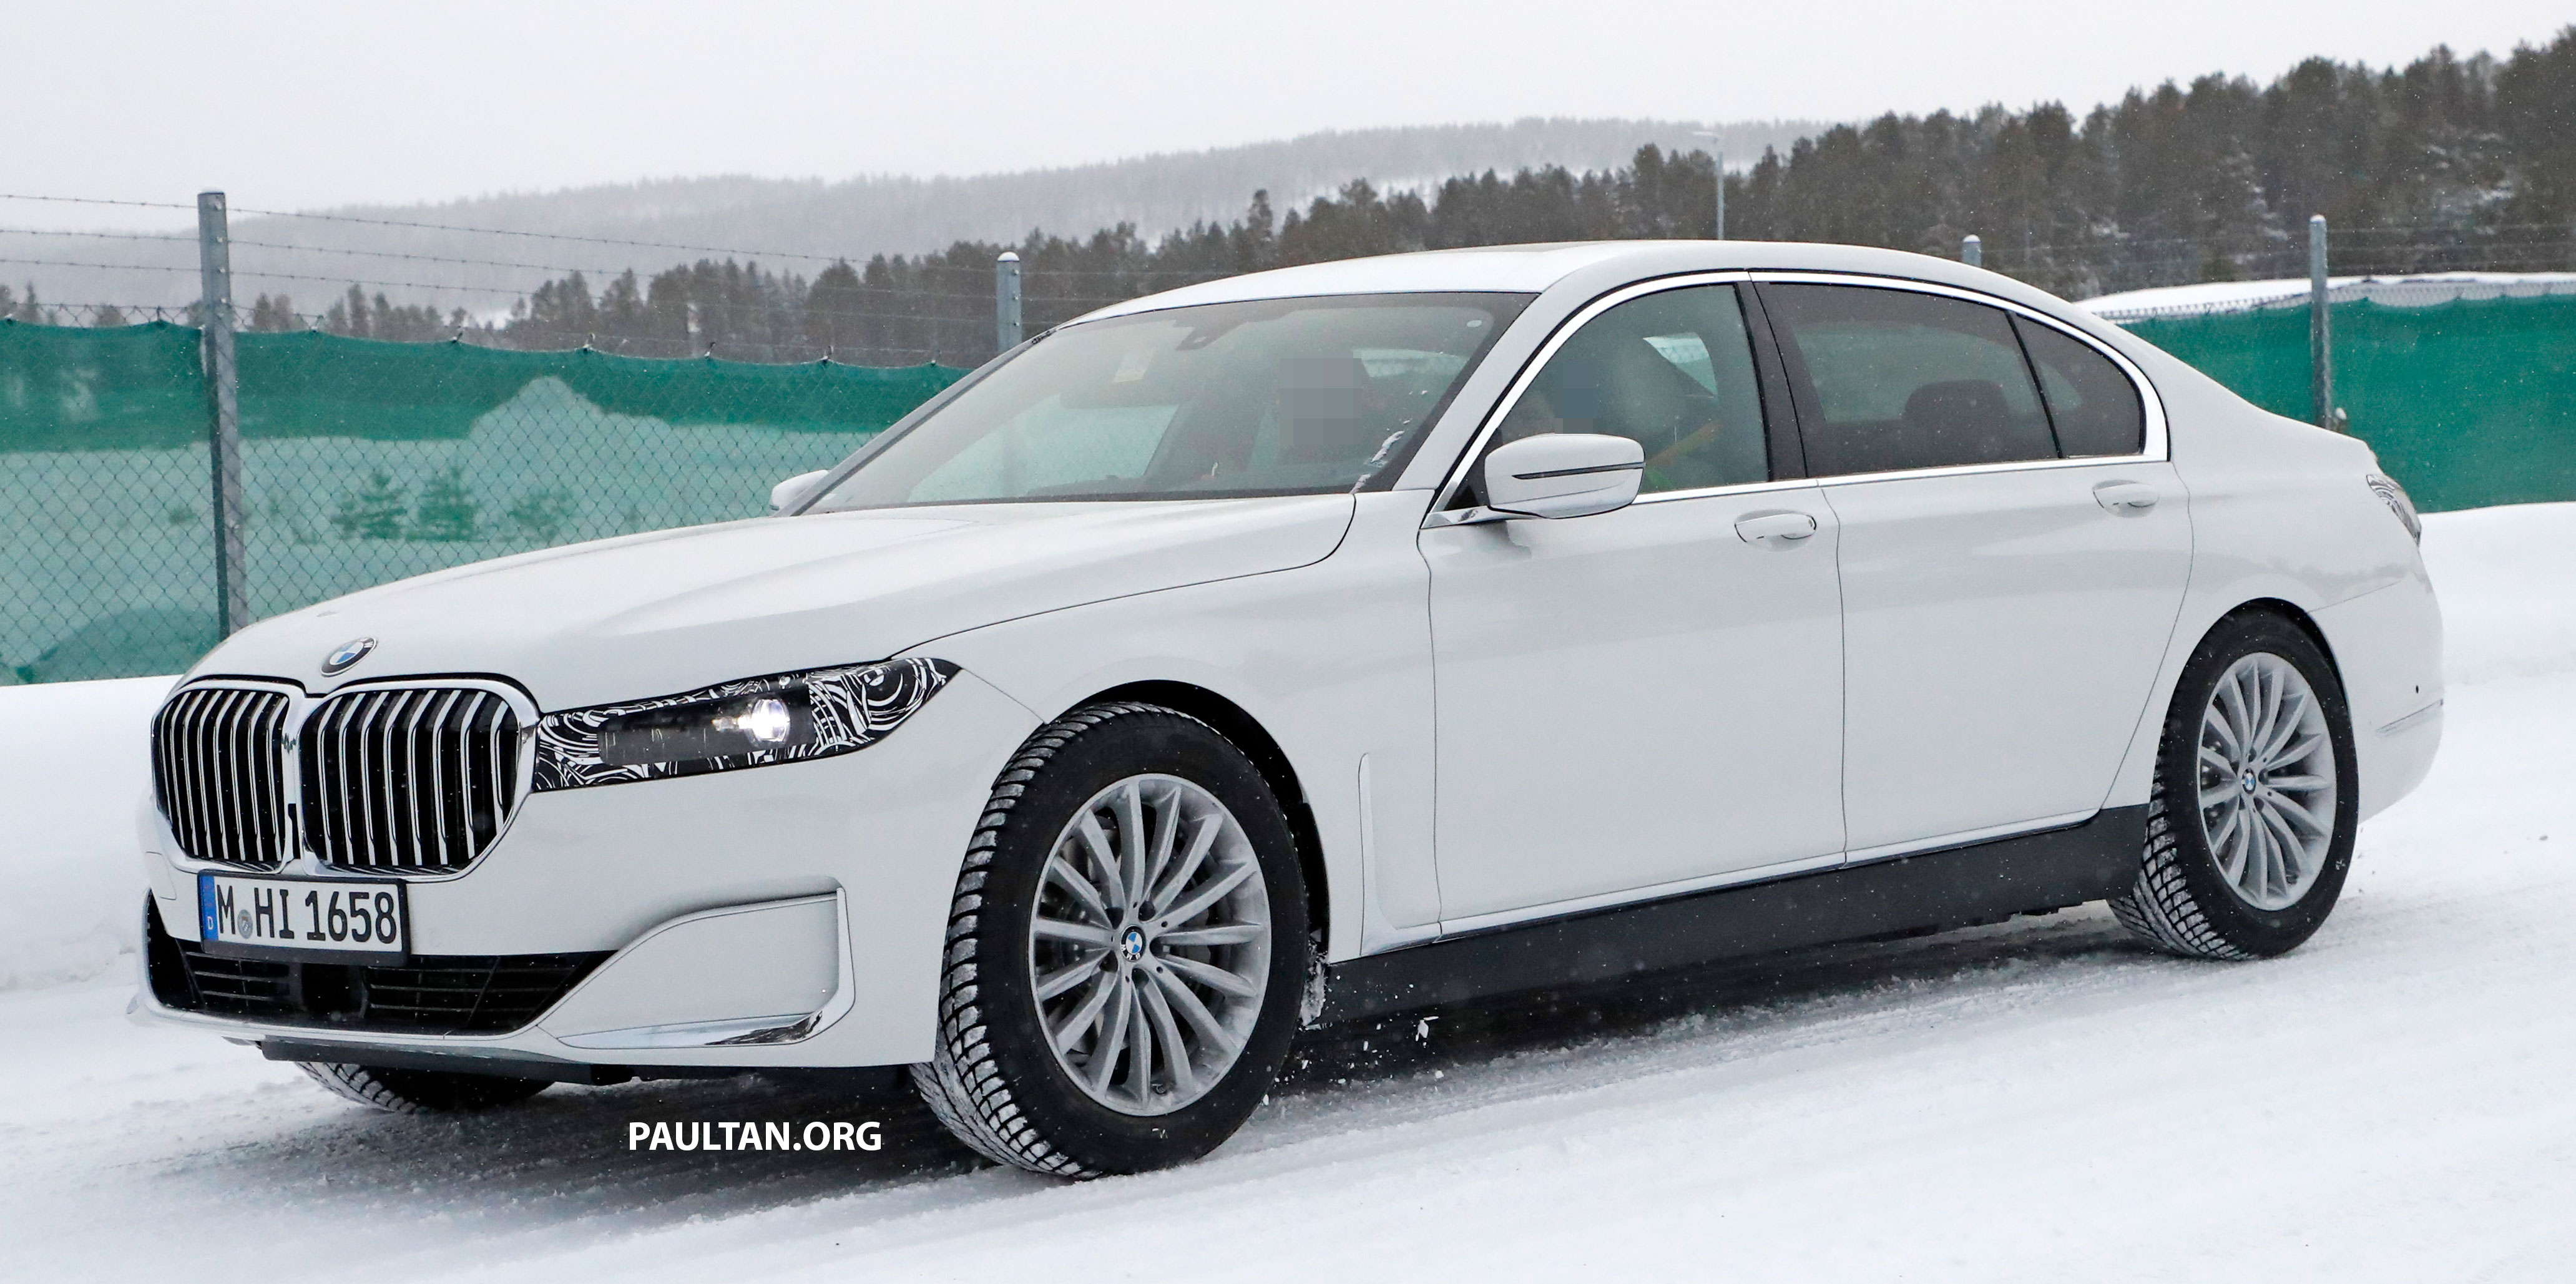 spyshots: 2022 bmw 7 series mule in g11/g12 body 2022-bmw